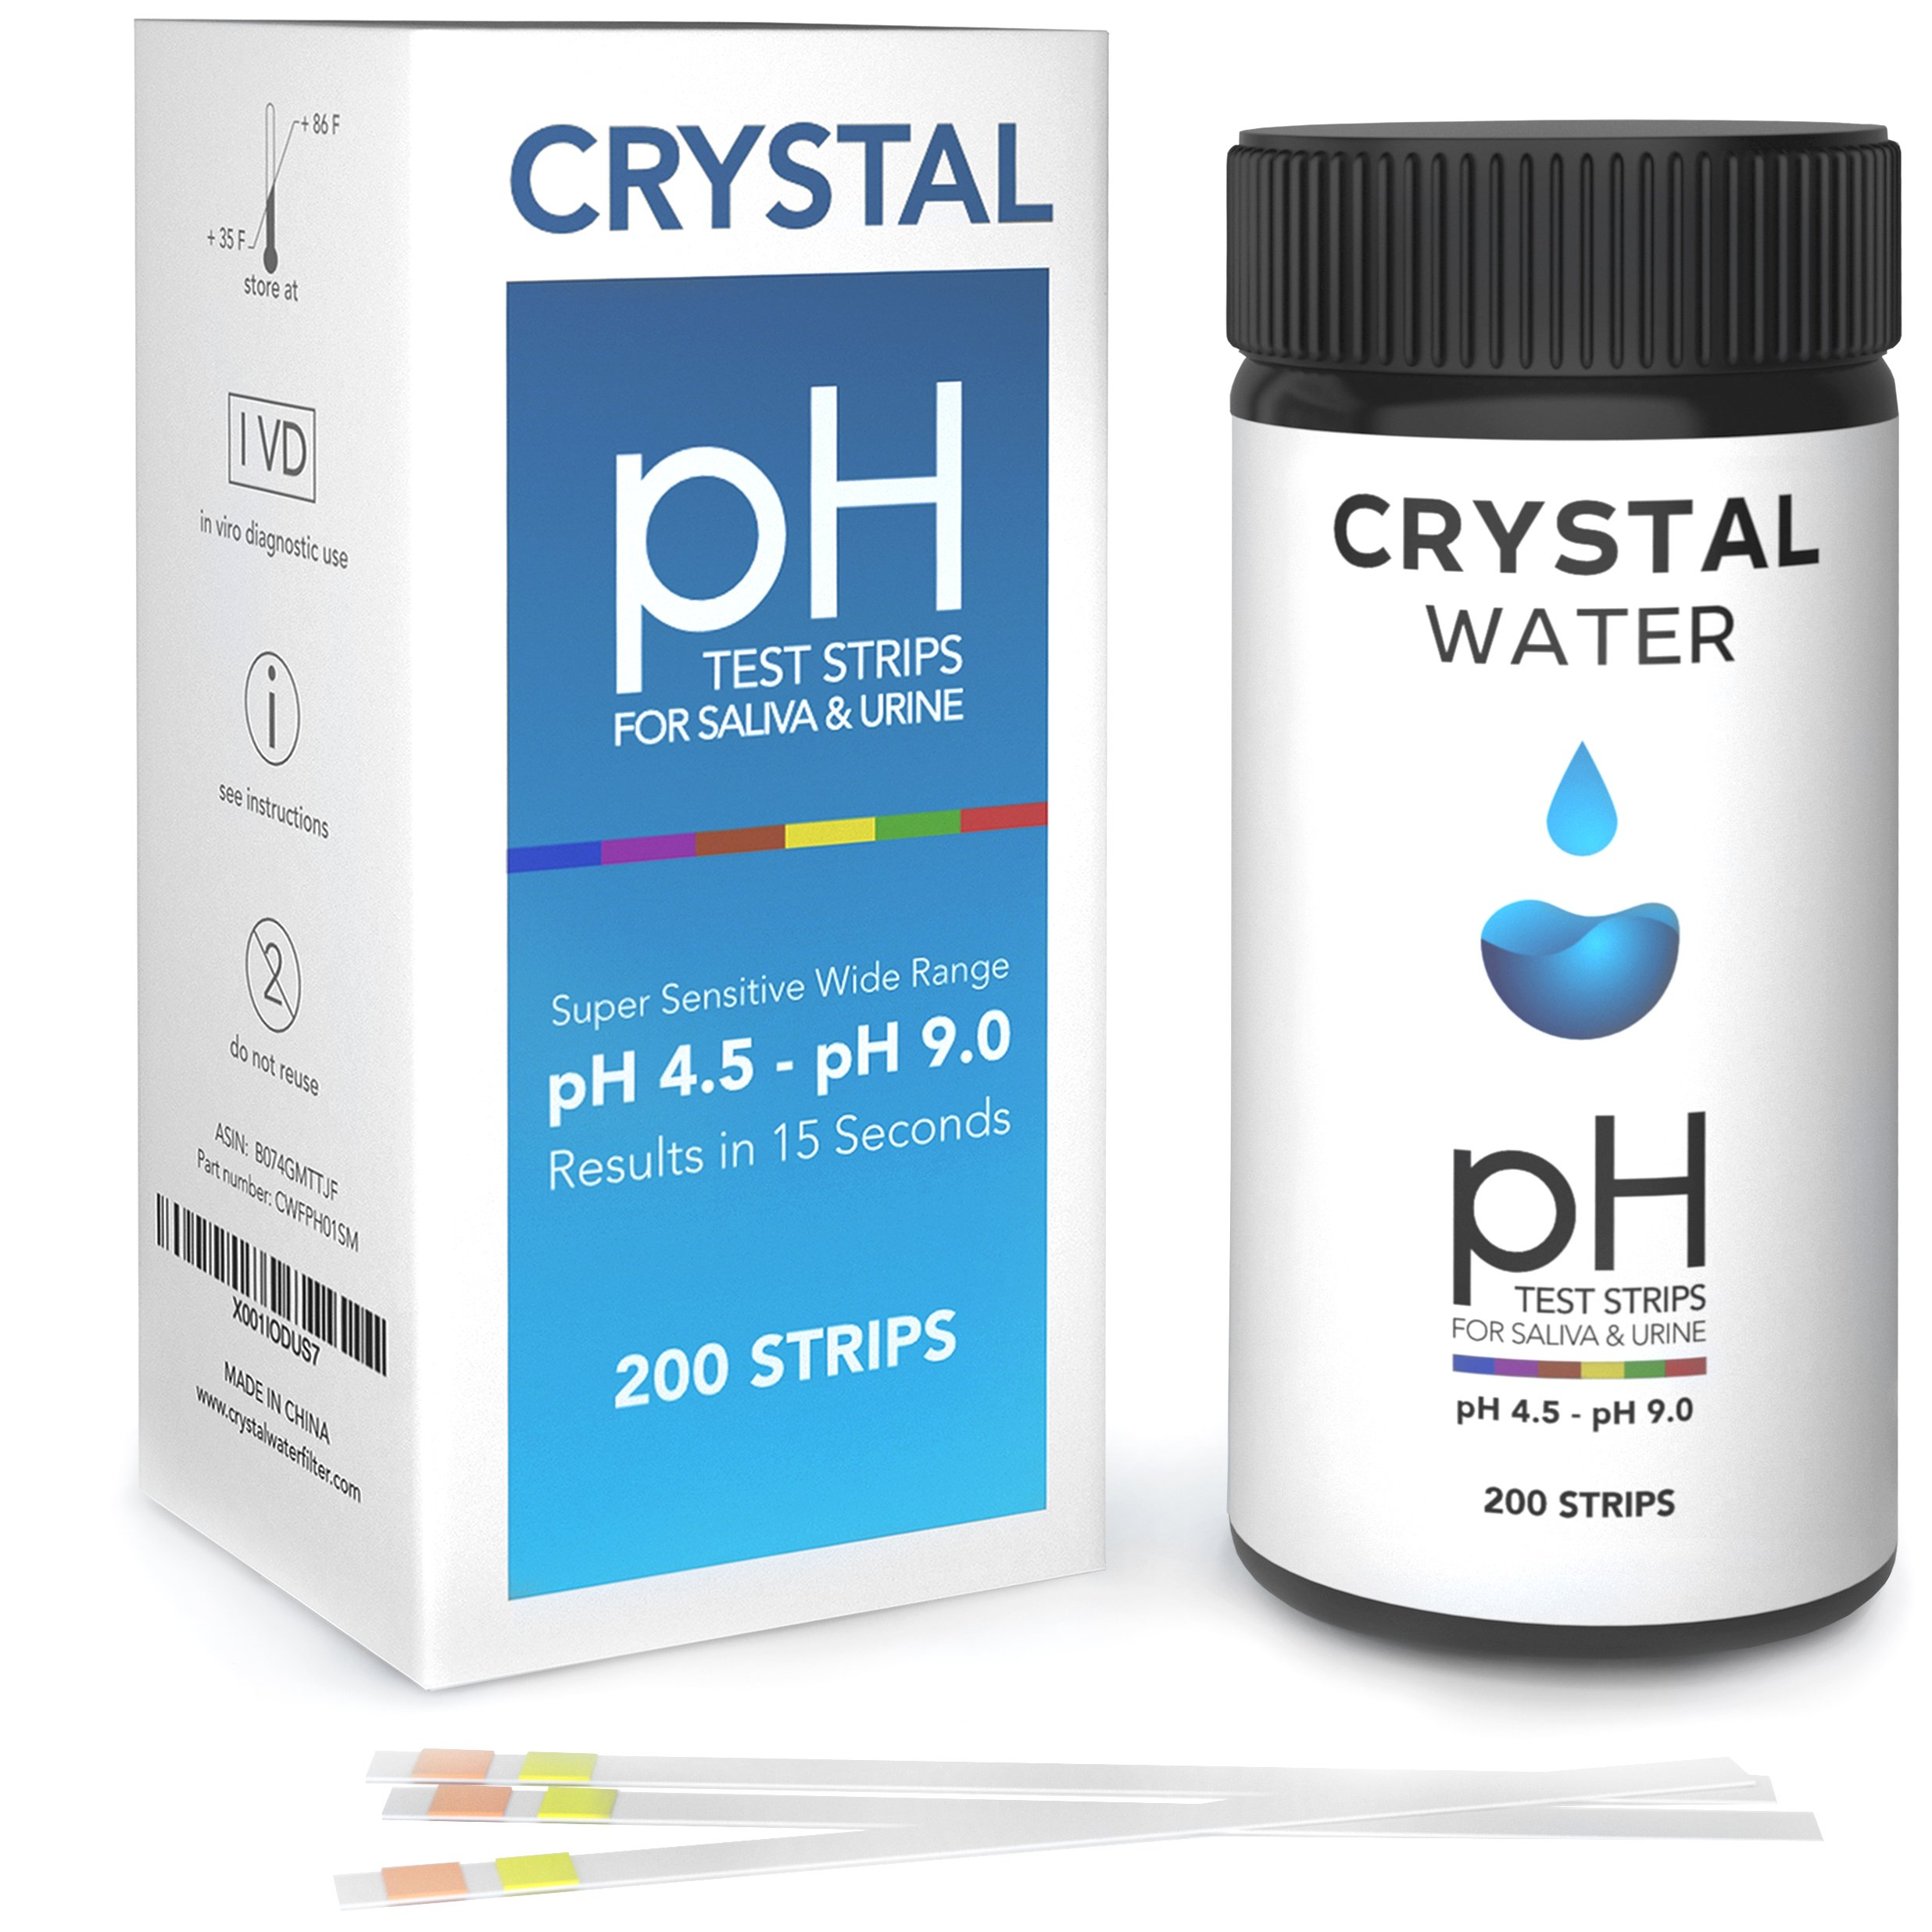 200ct PACK - CRYSTAL pH Test Strips for Urine and Saliva - pH Test Kit - Reagent Test strips for your Alkaline and Acid level Balance Your Bodies pH For Health and Diet